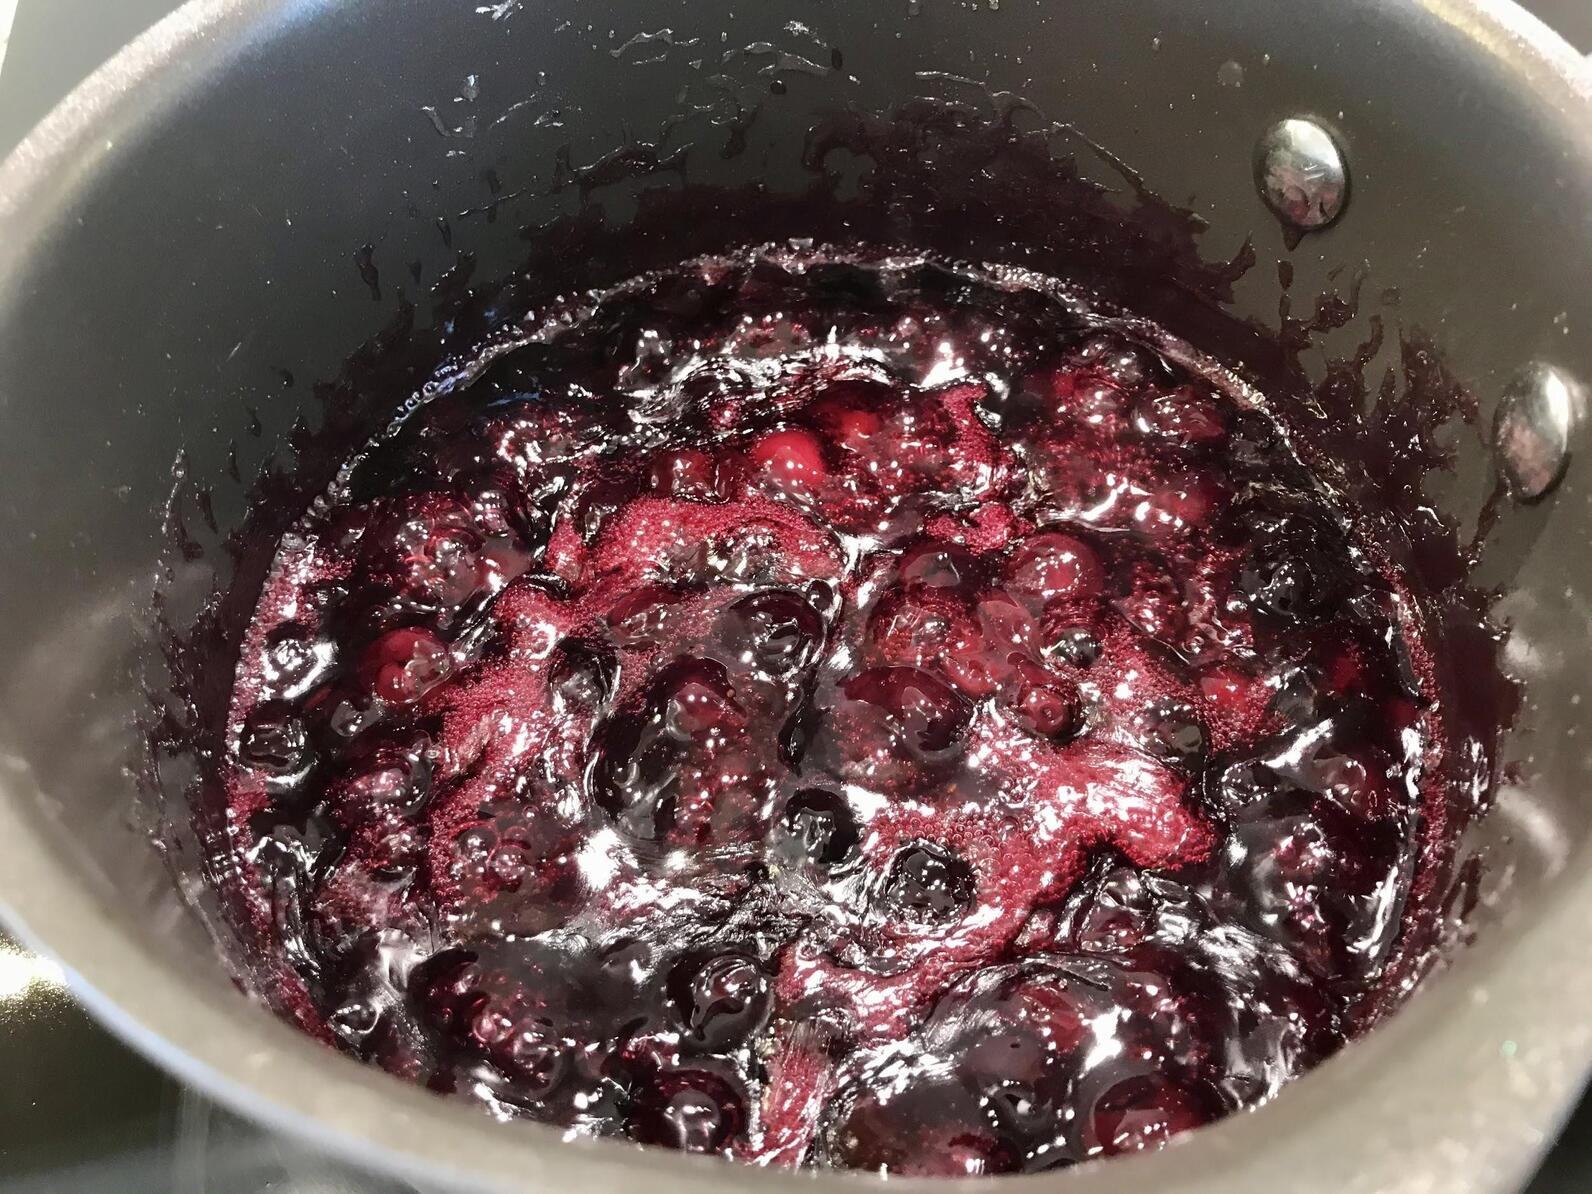 Making the berry and sugar mixture